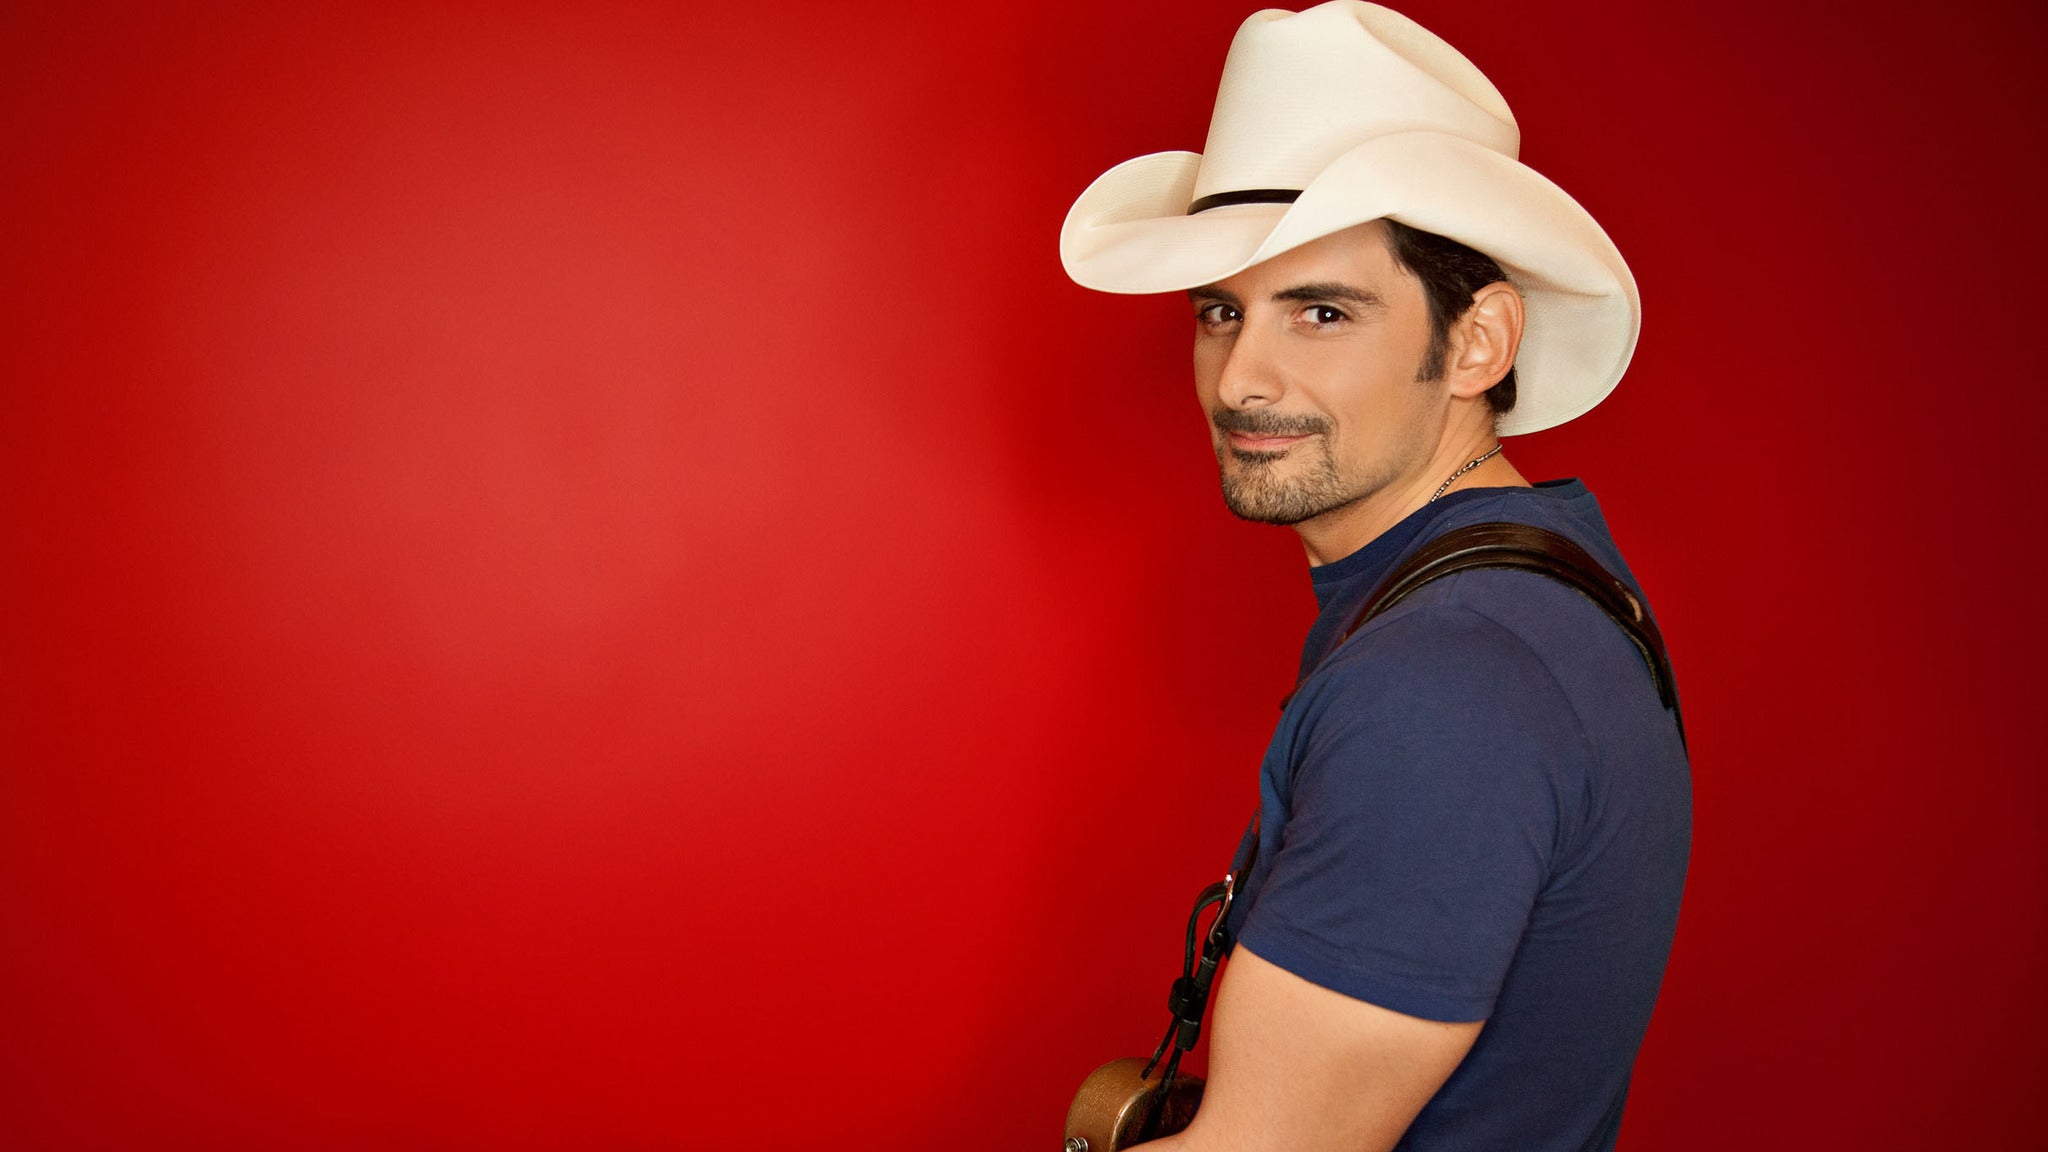 Brad Paisley Weekend Warrior World Tour at Allstate Arena